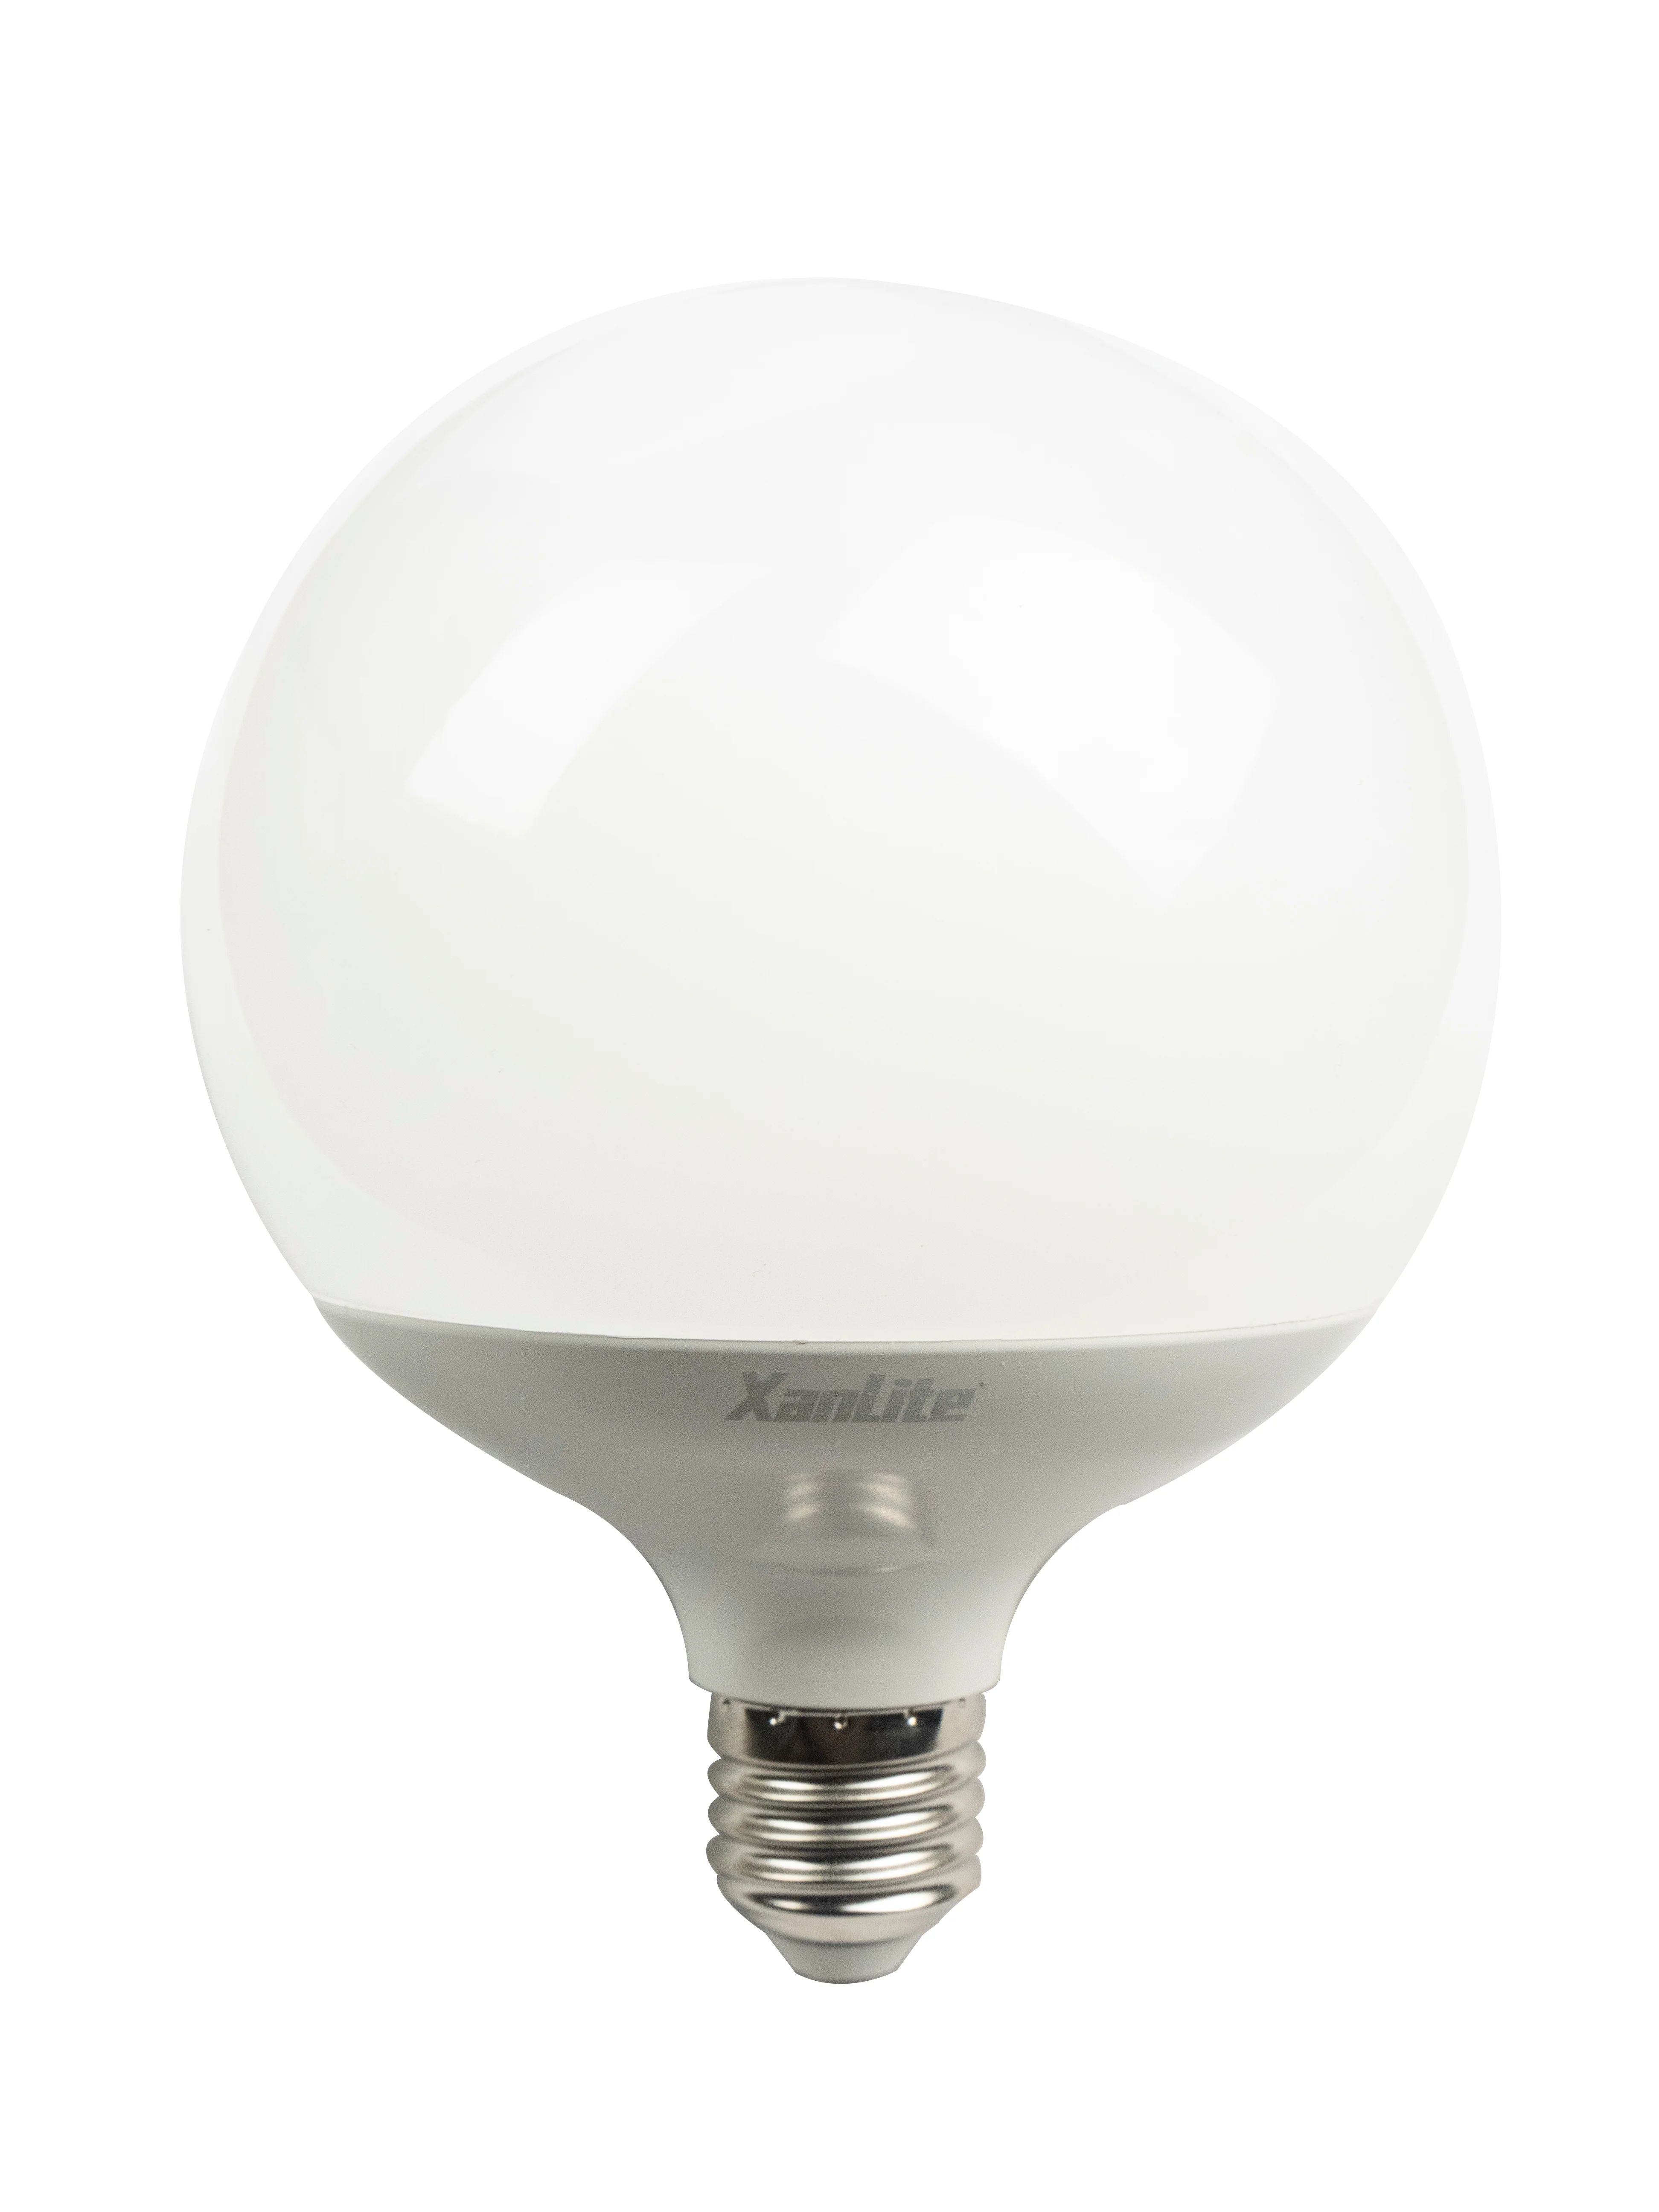 Ampoule Led Opaque Globe 125 Mm E27 2452 Lm 150 W Blanc Chaud Xanlite Leroy Merlin